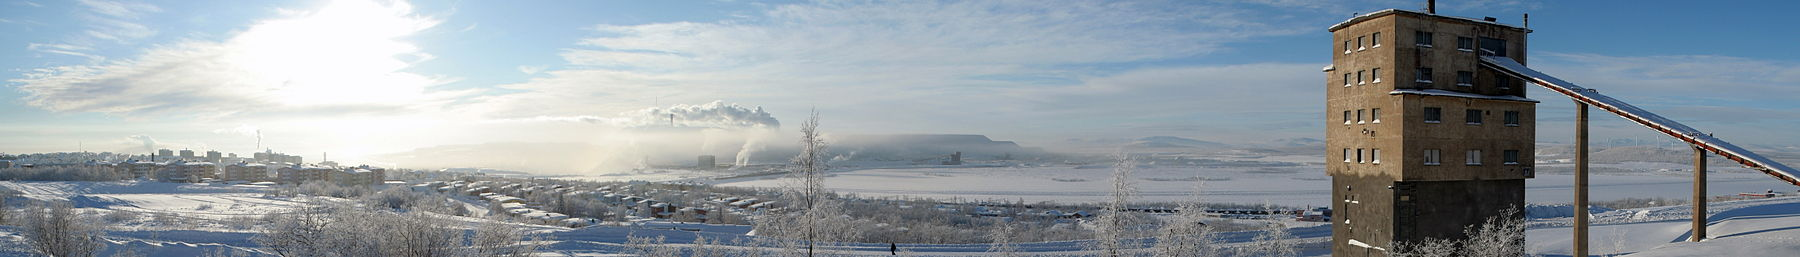 Kiruna banner View from the old mine to the new mine.jpg